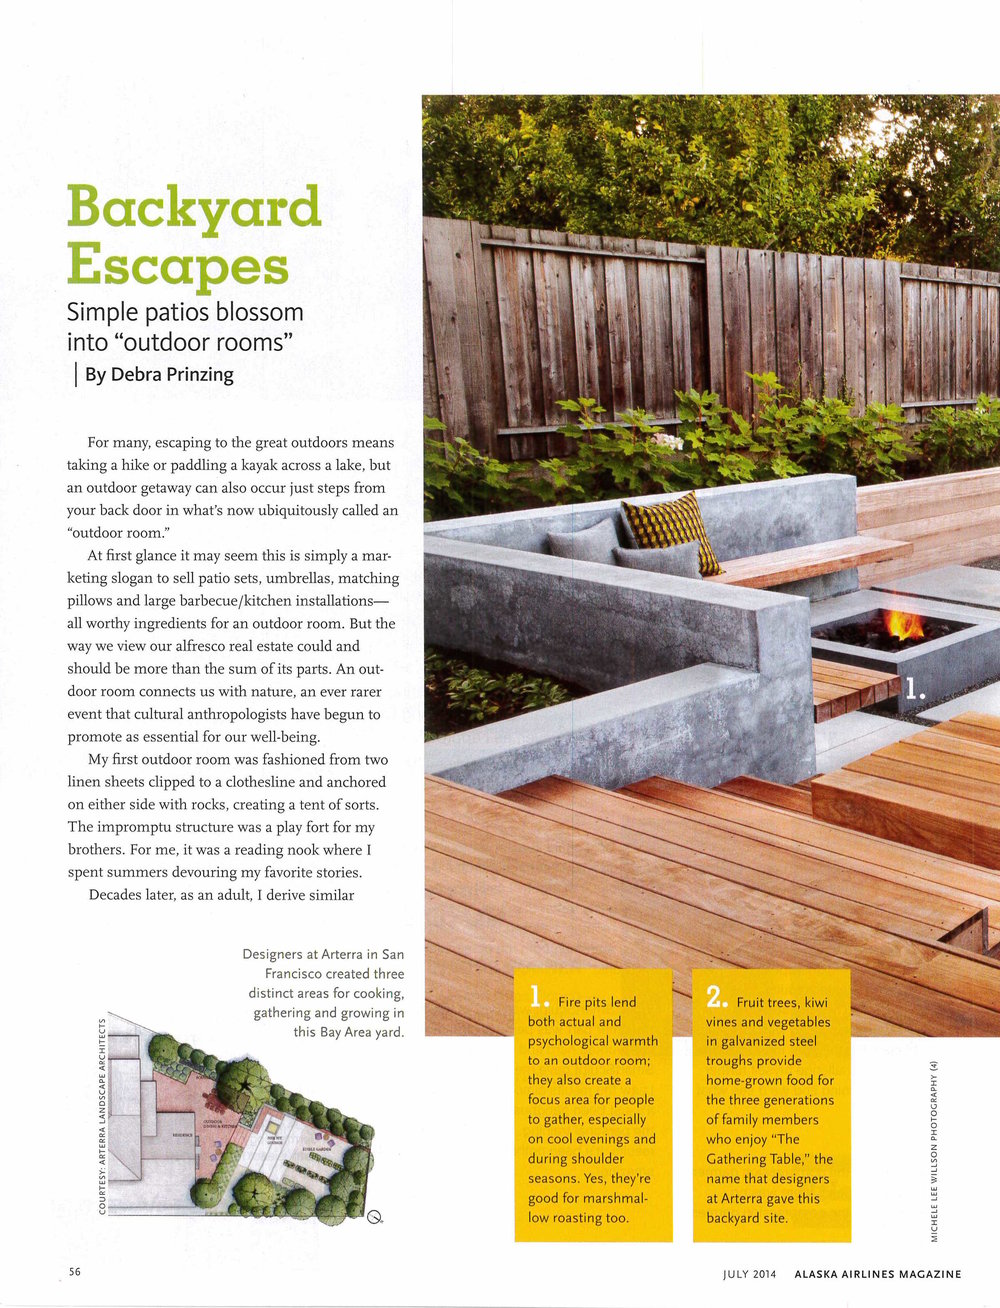 This article in Alaska Airline Magazine features the Gathering Table, a project with a garden for three generations and a gathering place around a concrete firepit.